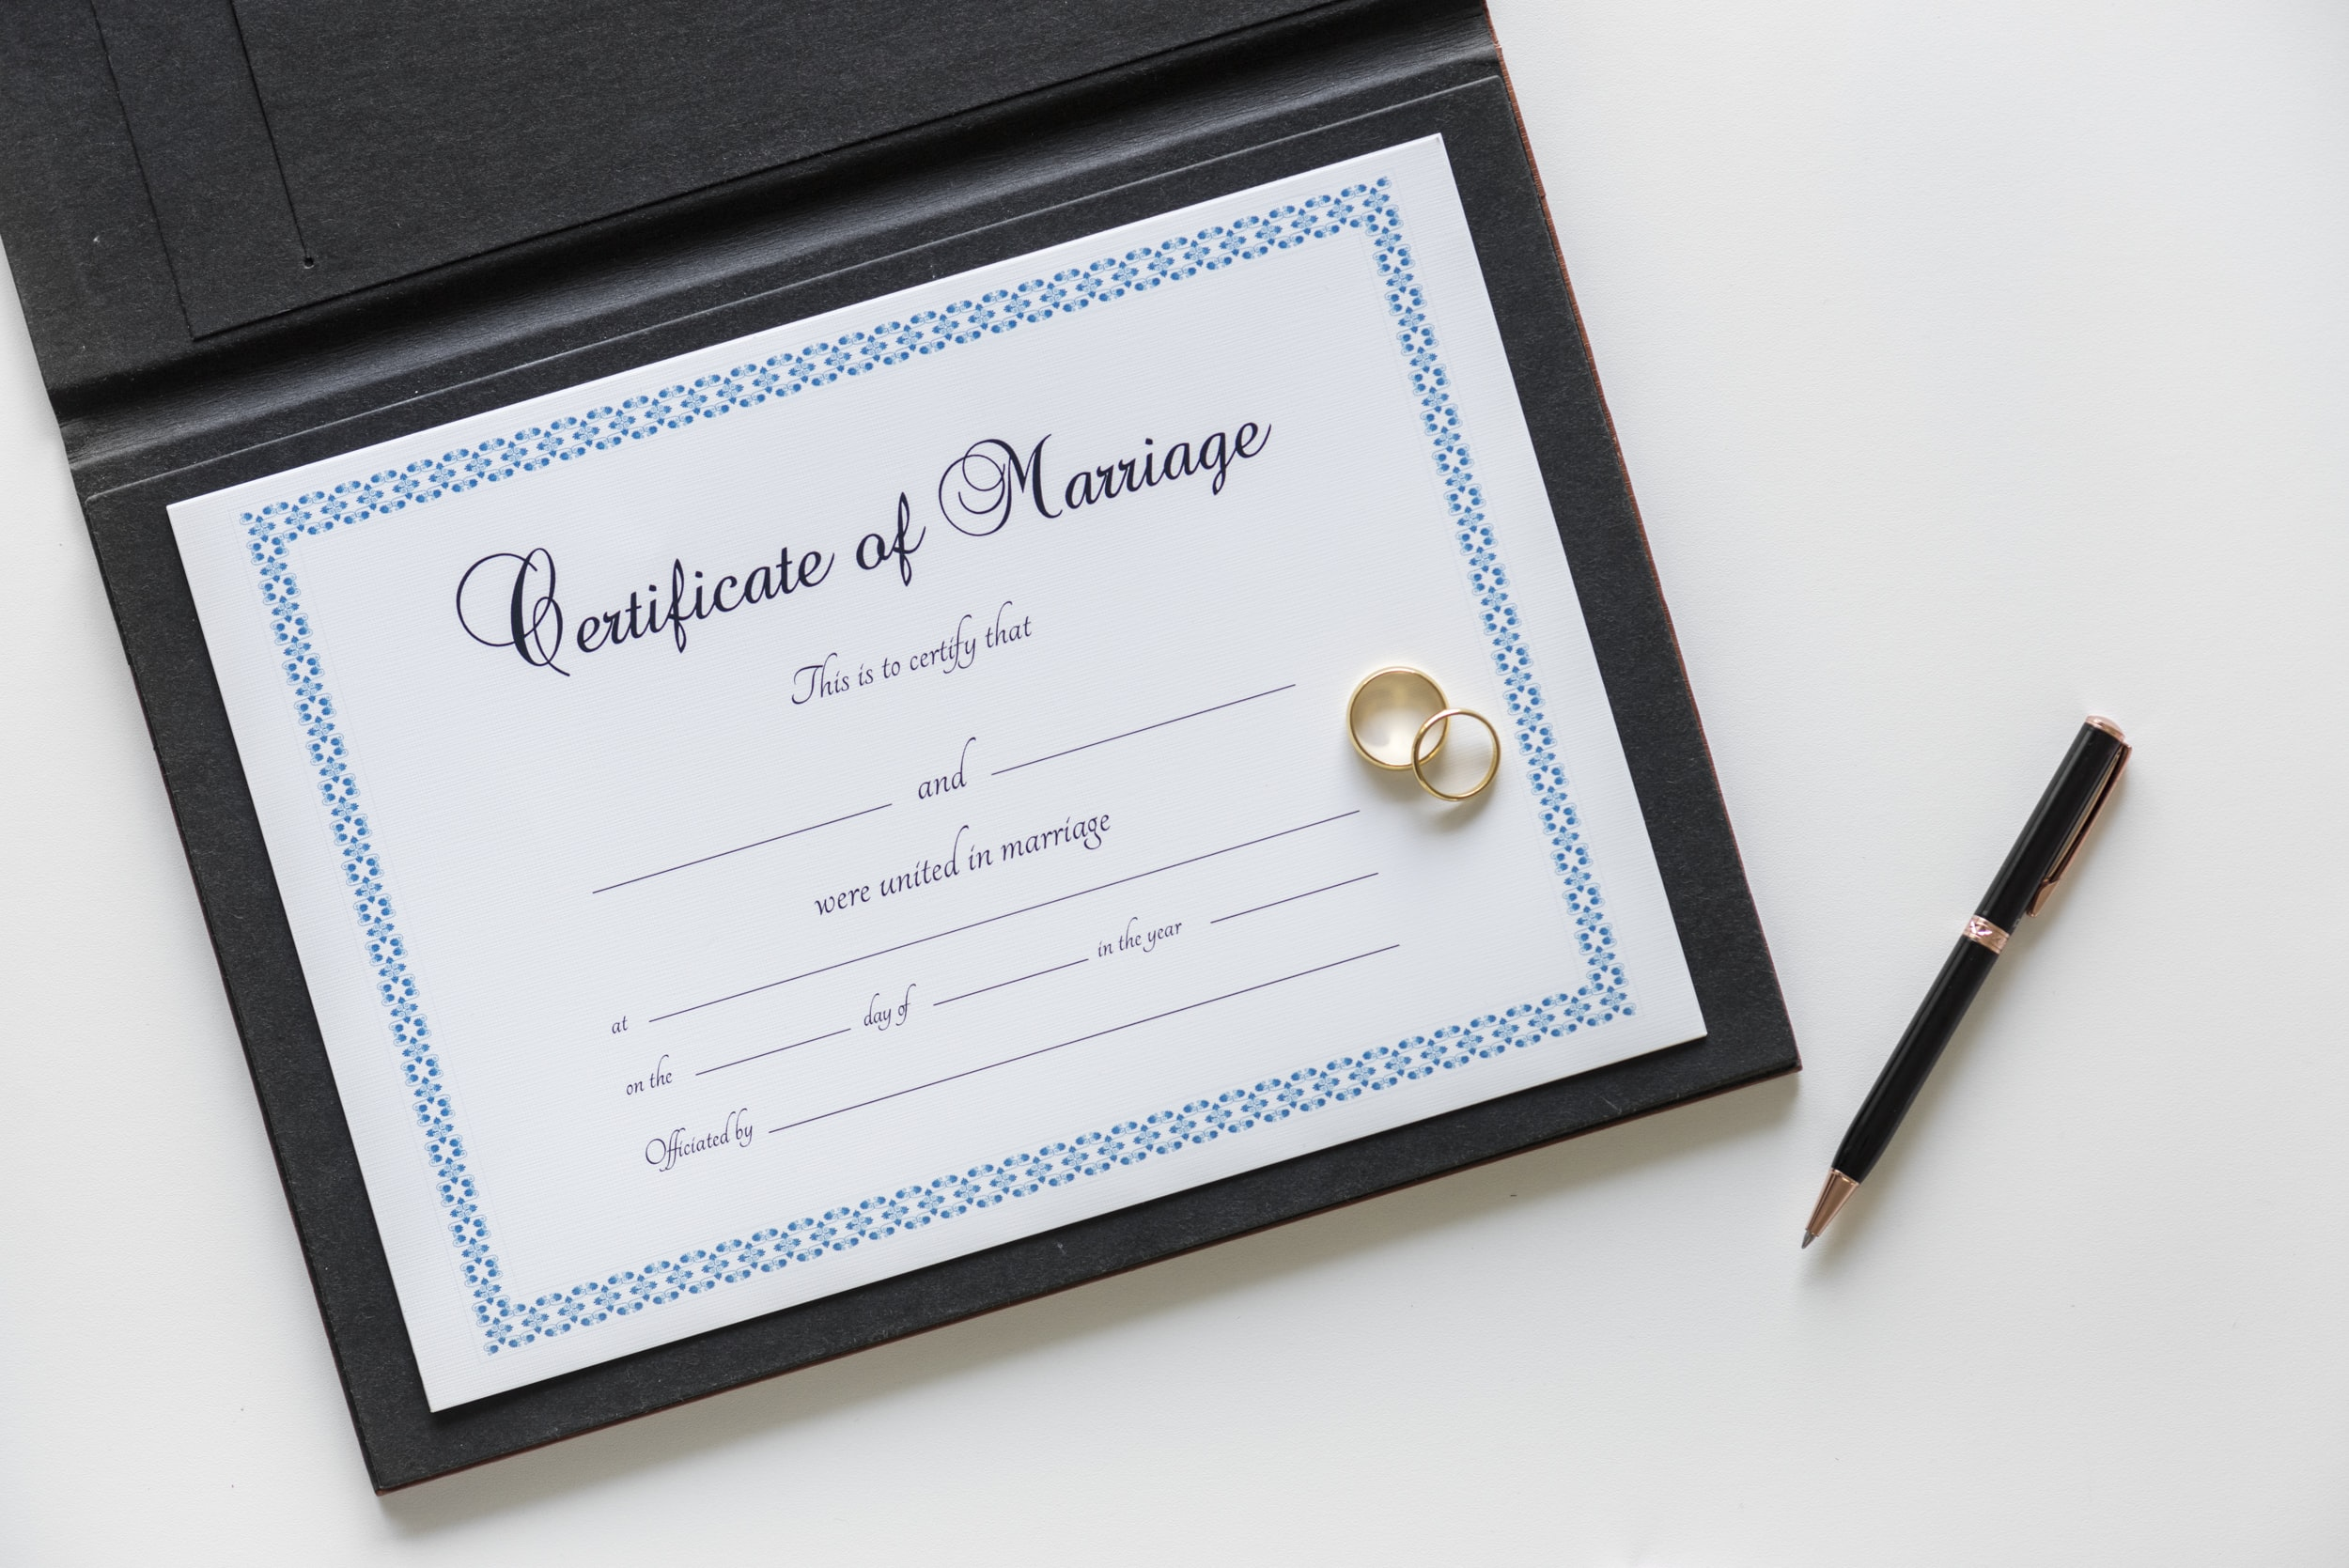 certificate of marriage with gold-colored wedding rings beside black click pen